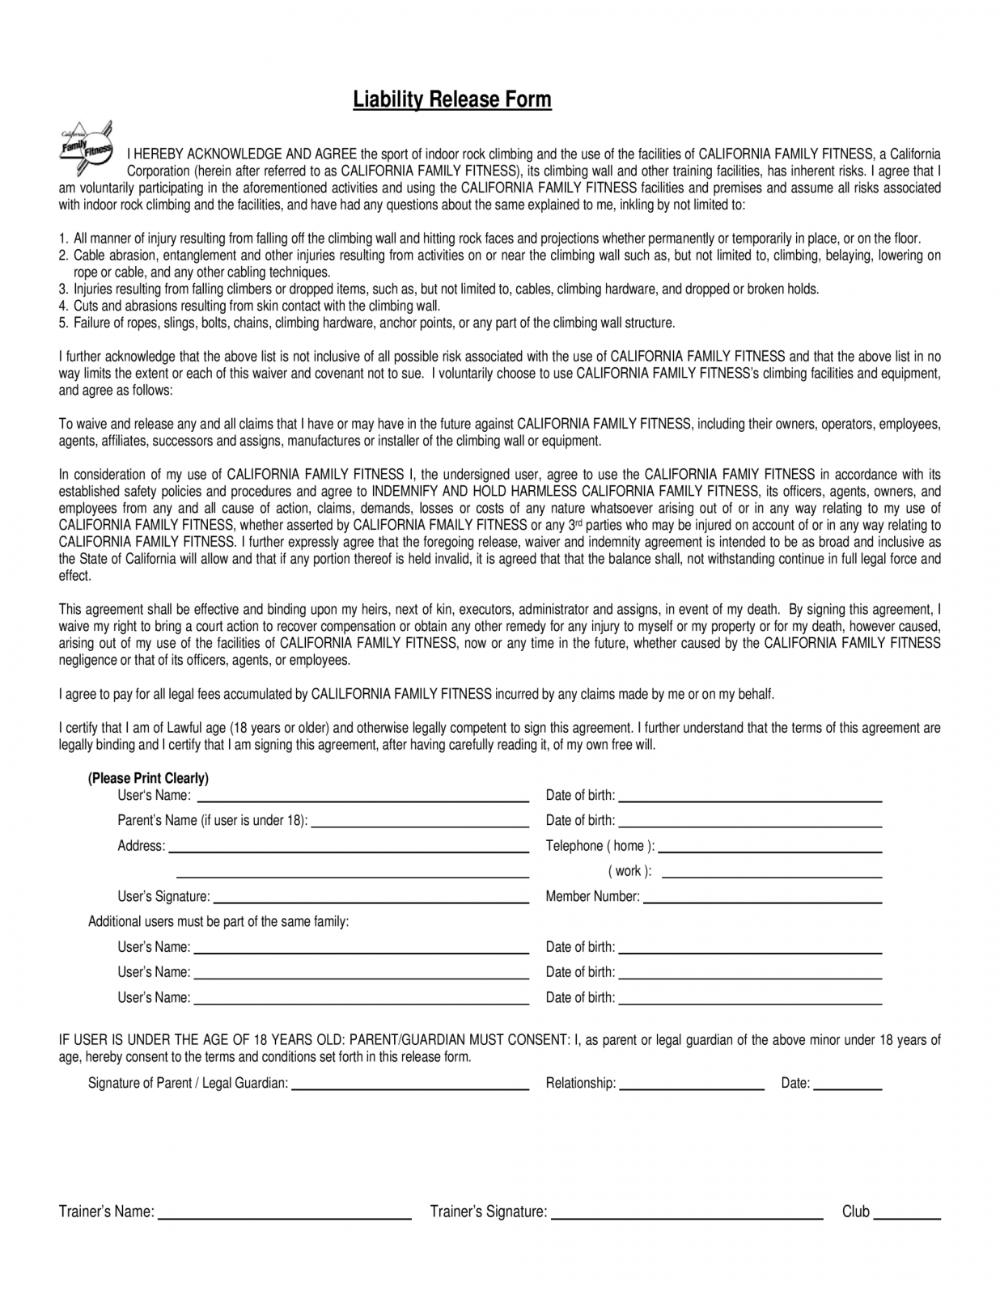 California Release Of Liability Form Throughout General Release Of Liability Form California Liability Liability Waiver Form